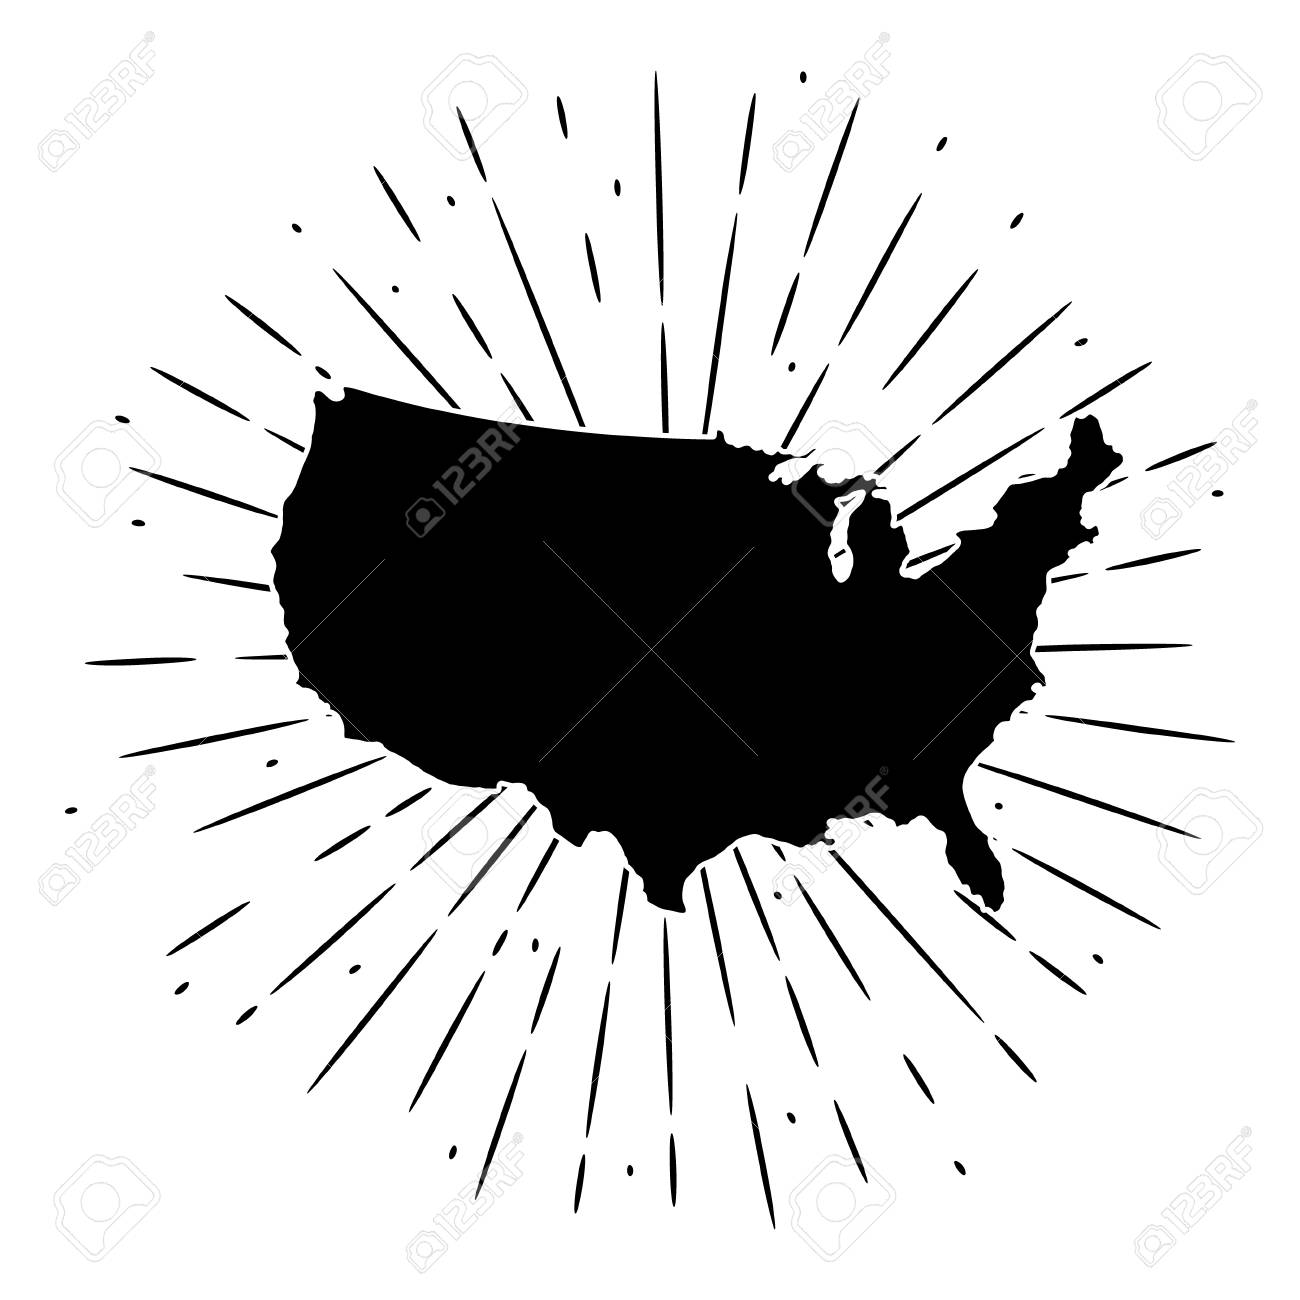 vector illustration with map usa and divergent rays used for poster banner web